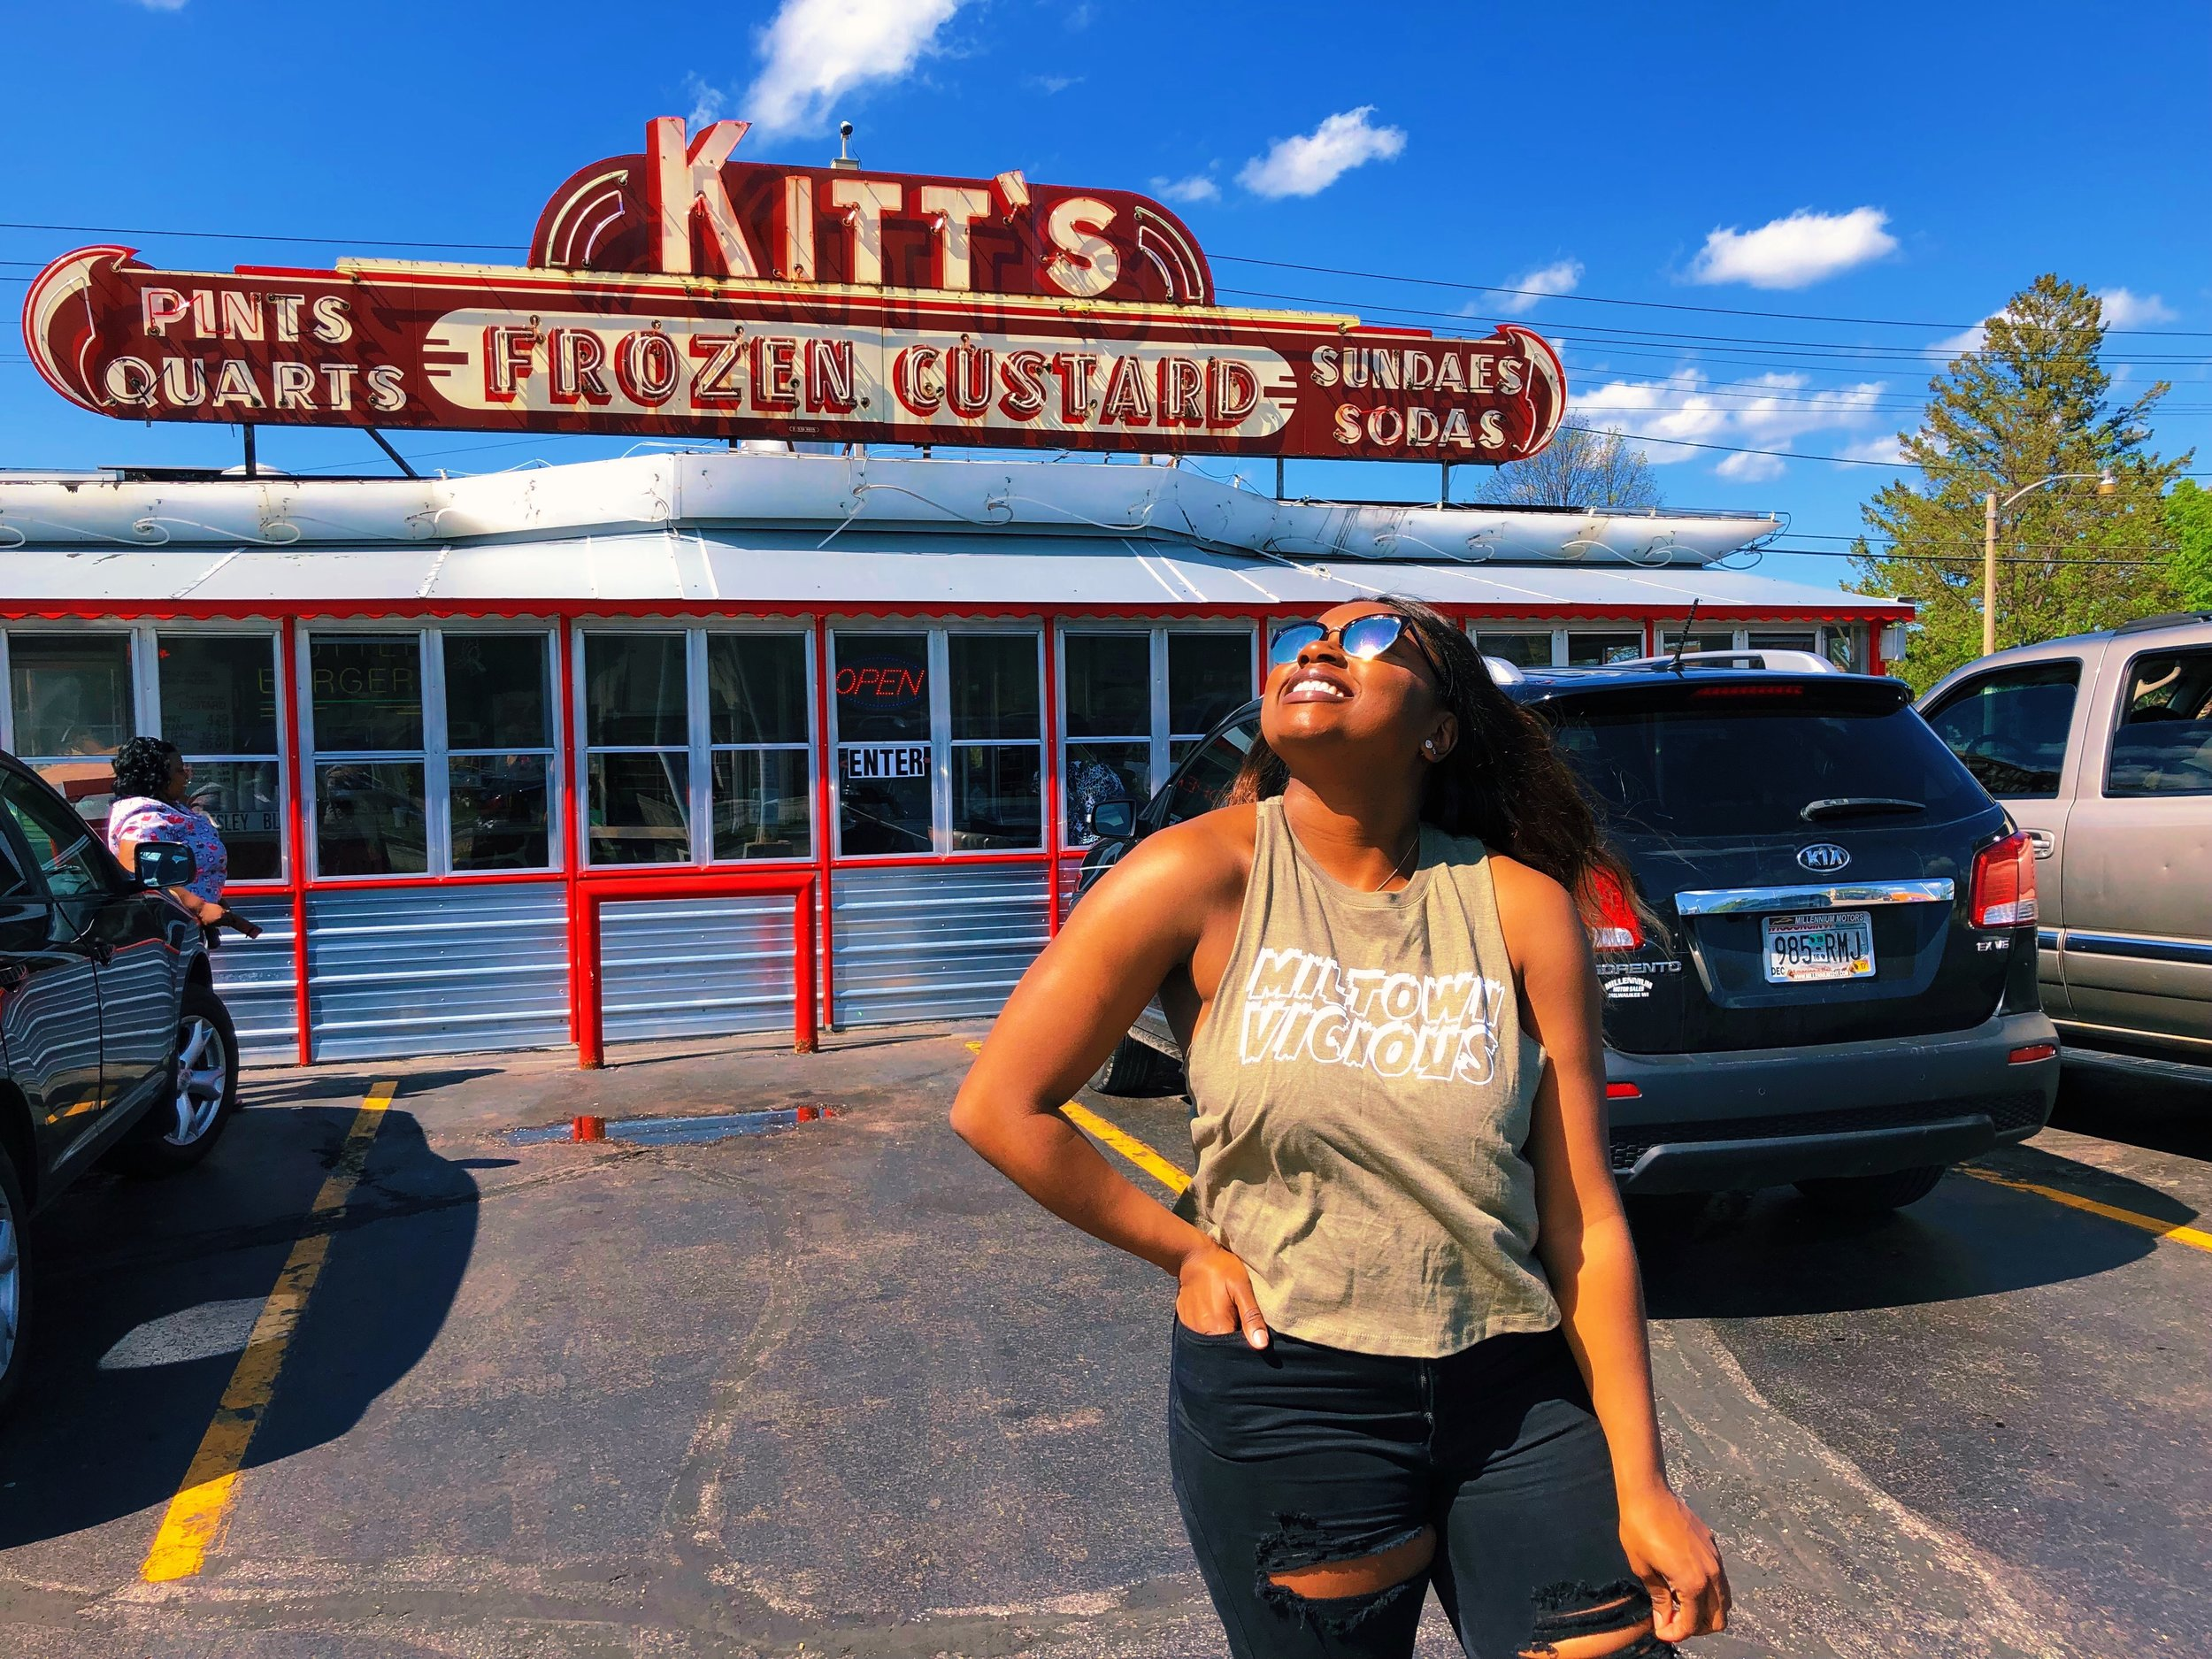 Special thanks to Kitt's Frozen Custard, a Northside staple,  for allowing us to shoot our Summer 2019 collection! You can find them at 7000 W Capitol Dr, Milwaukee, WI 53216